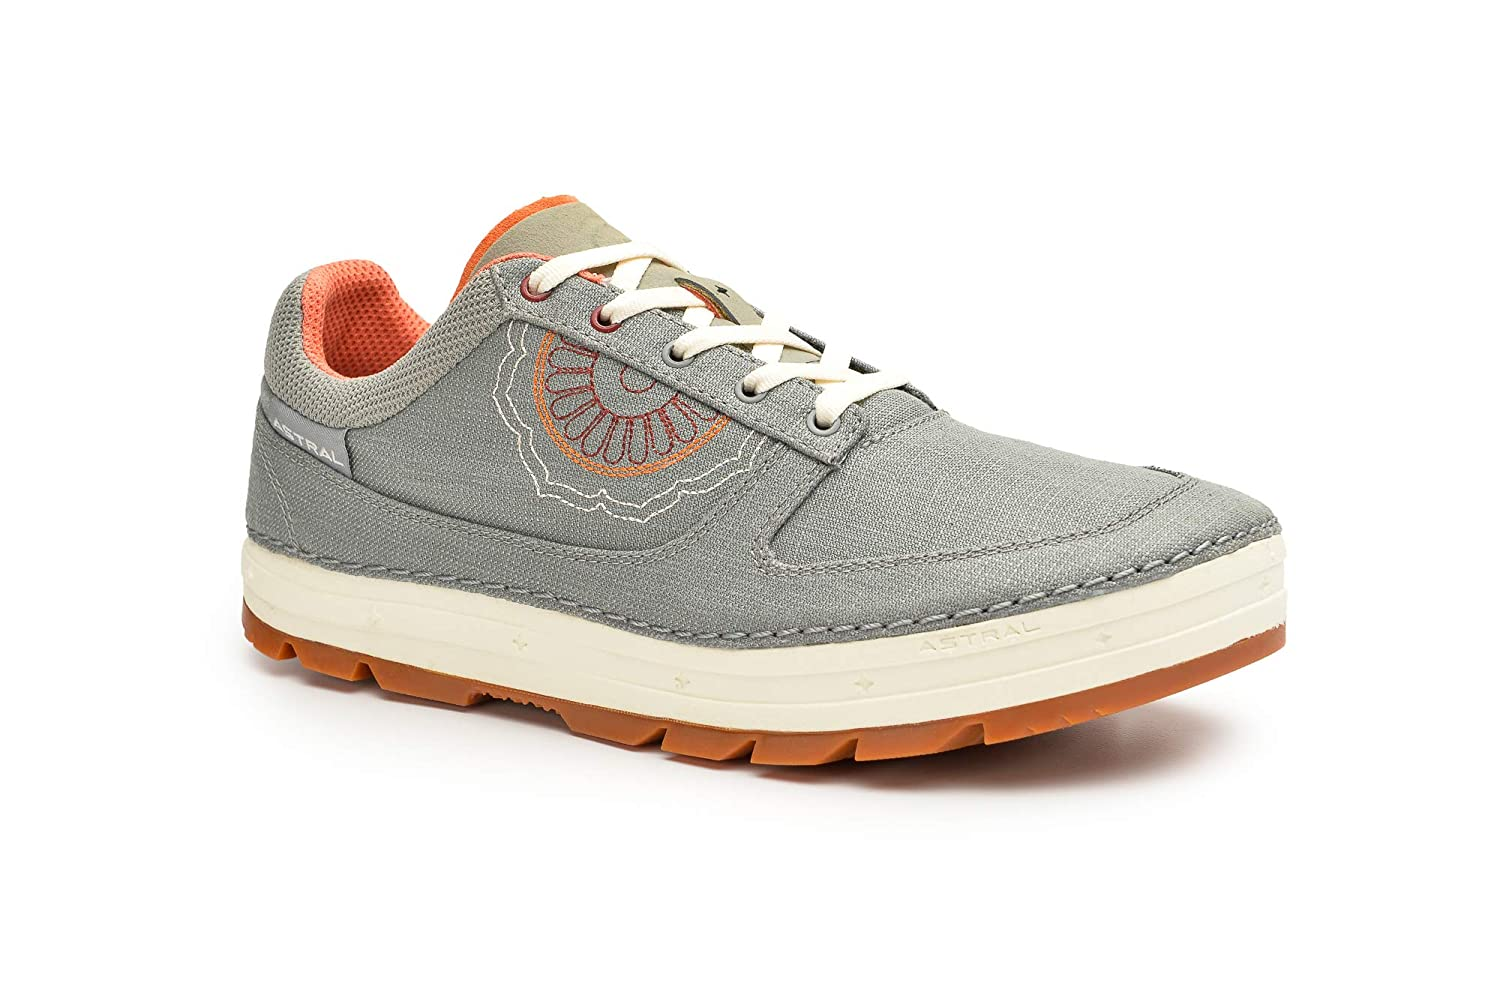 Astral Womens Hemp Tinker Casual Minimalist Shoes Breathable and Lightweight Made for Outdoor Activities and Travel